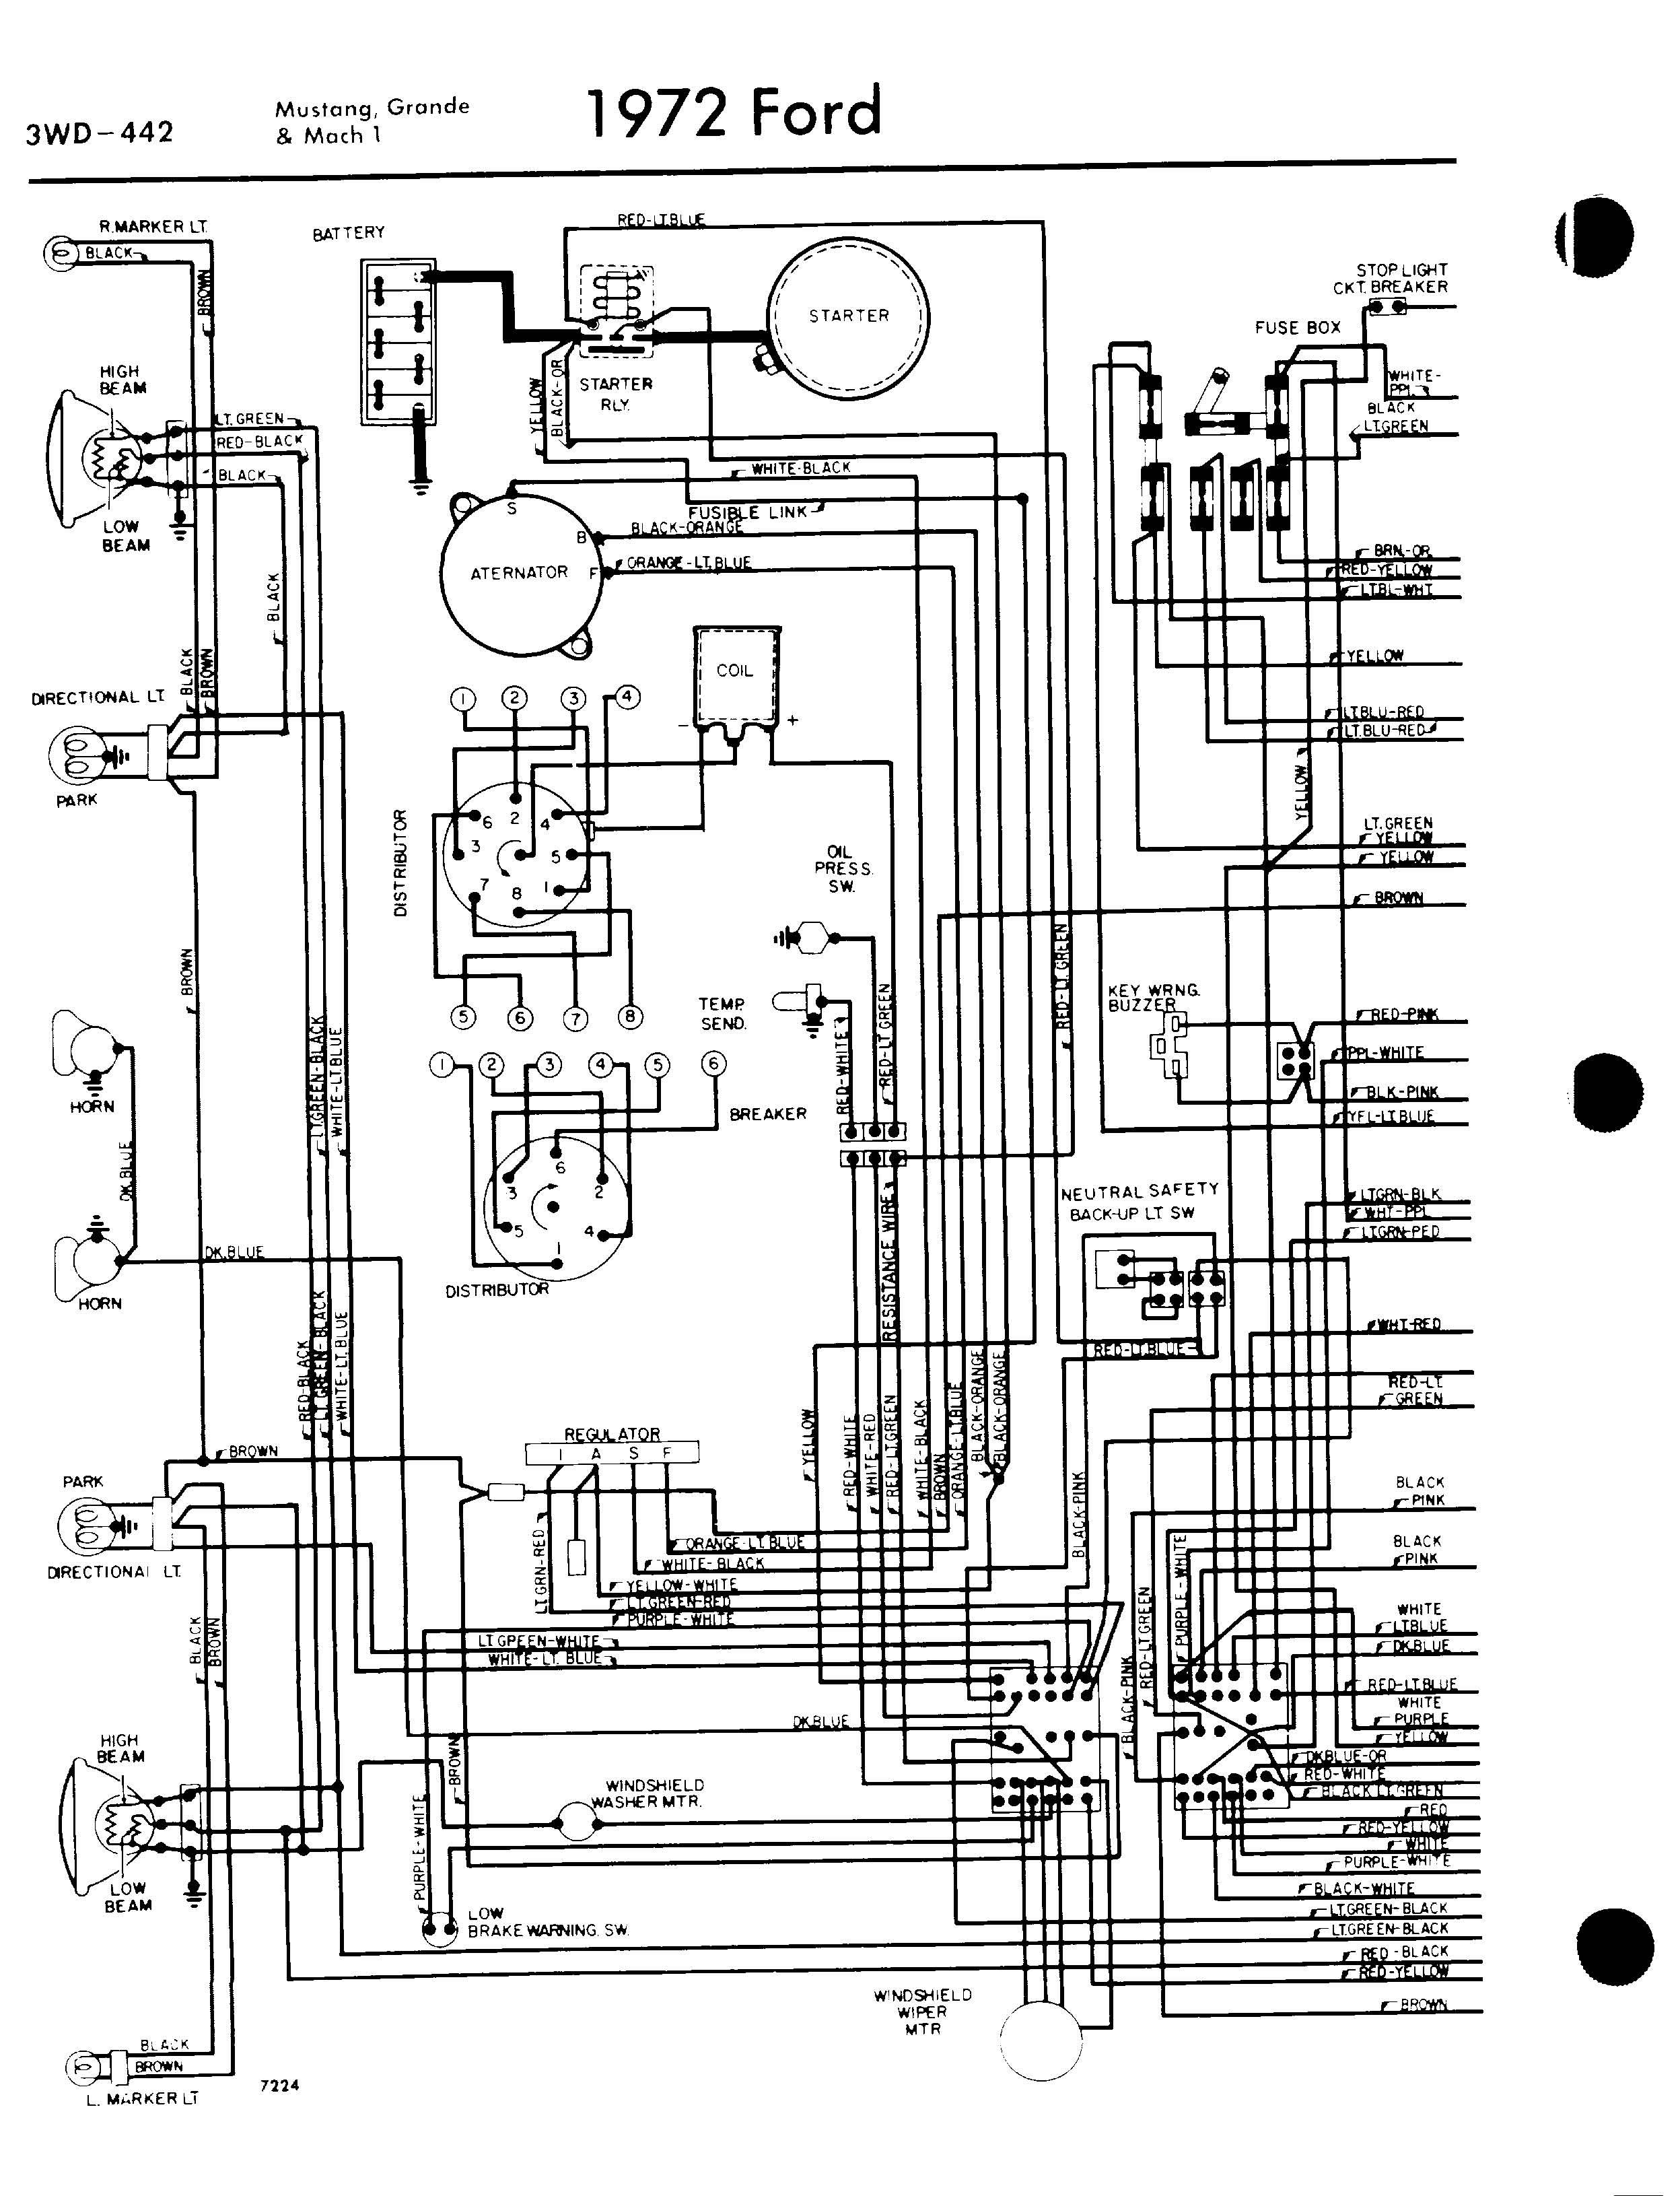 71af7a58e095e6a7716b32f1b23e8bd2 ford maverick wiring wiring diagram data